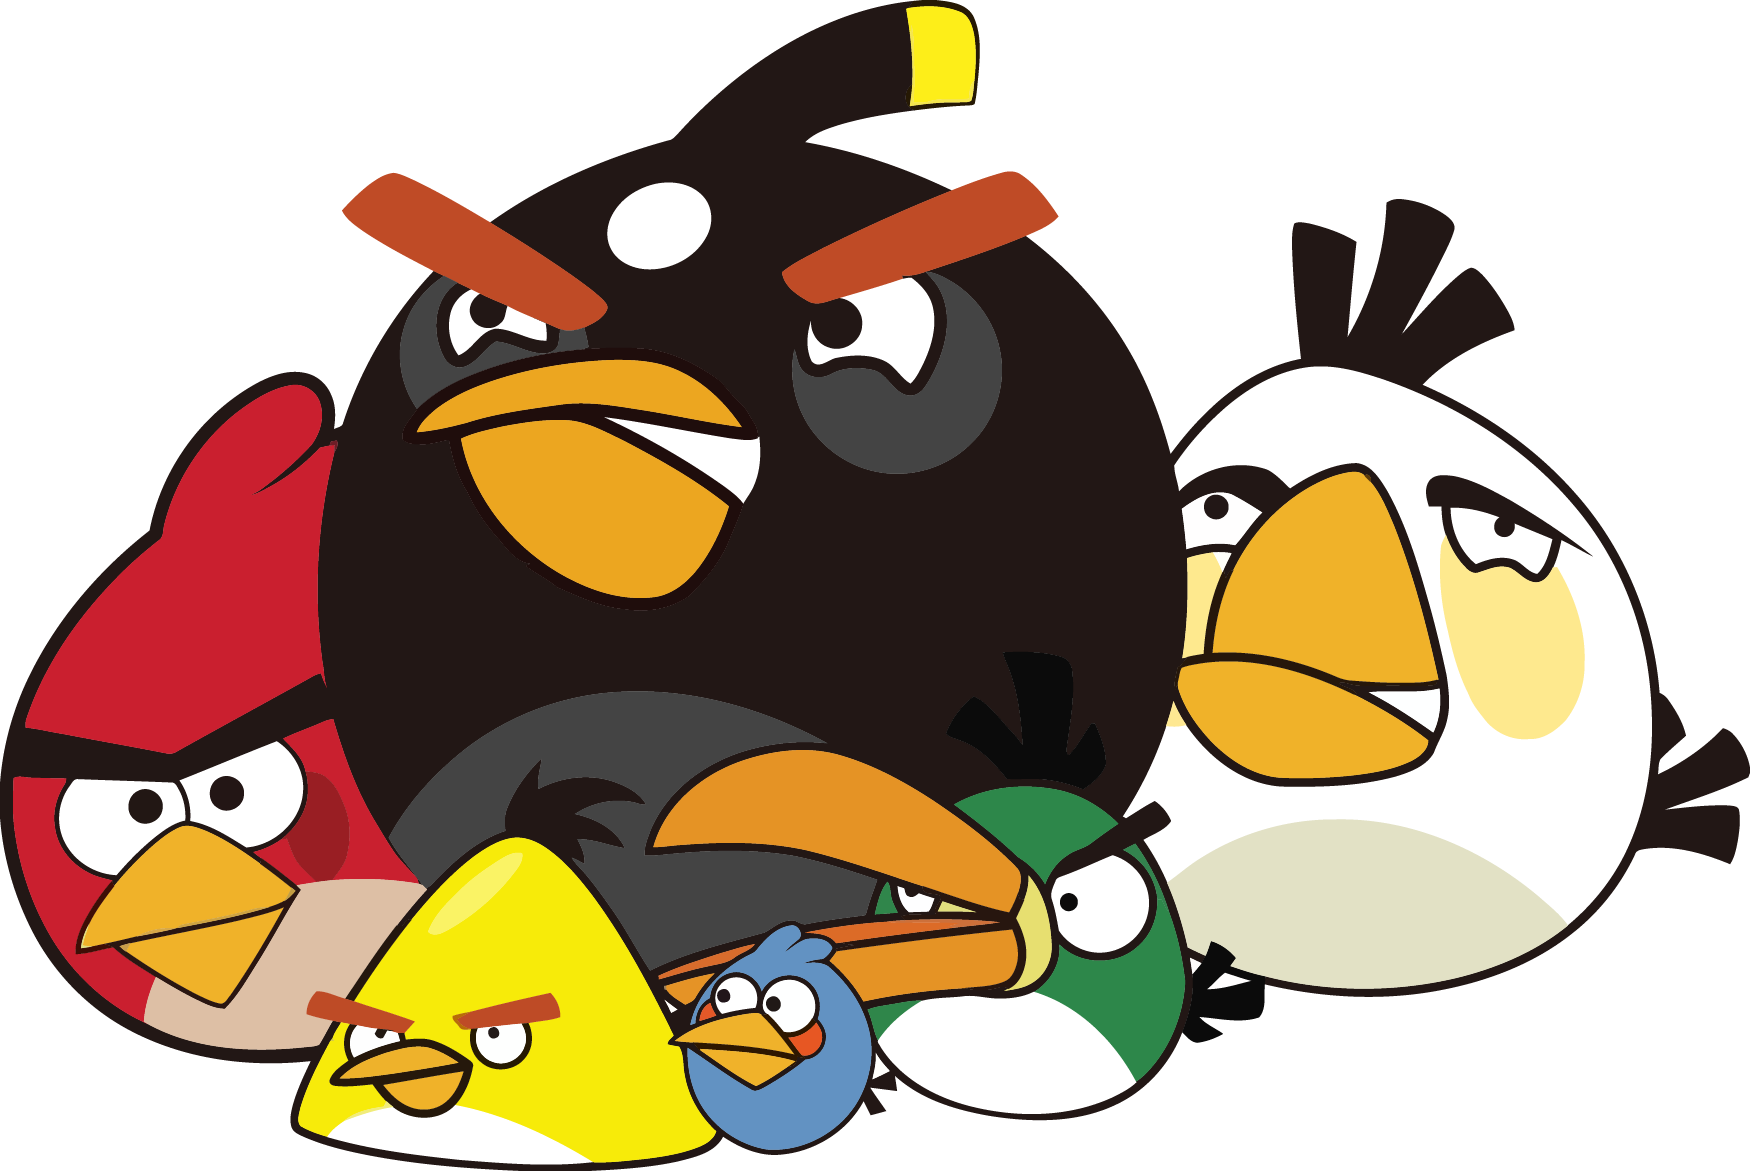 Apples clipart angry. Birds png clipartly comclipartly